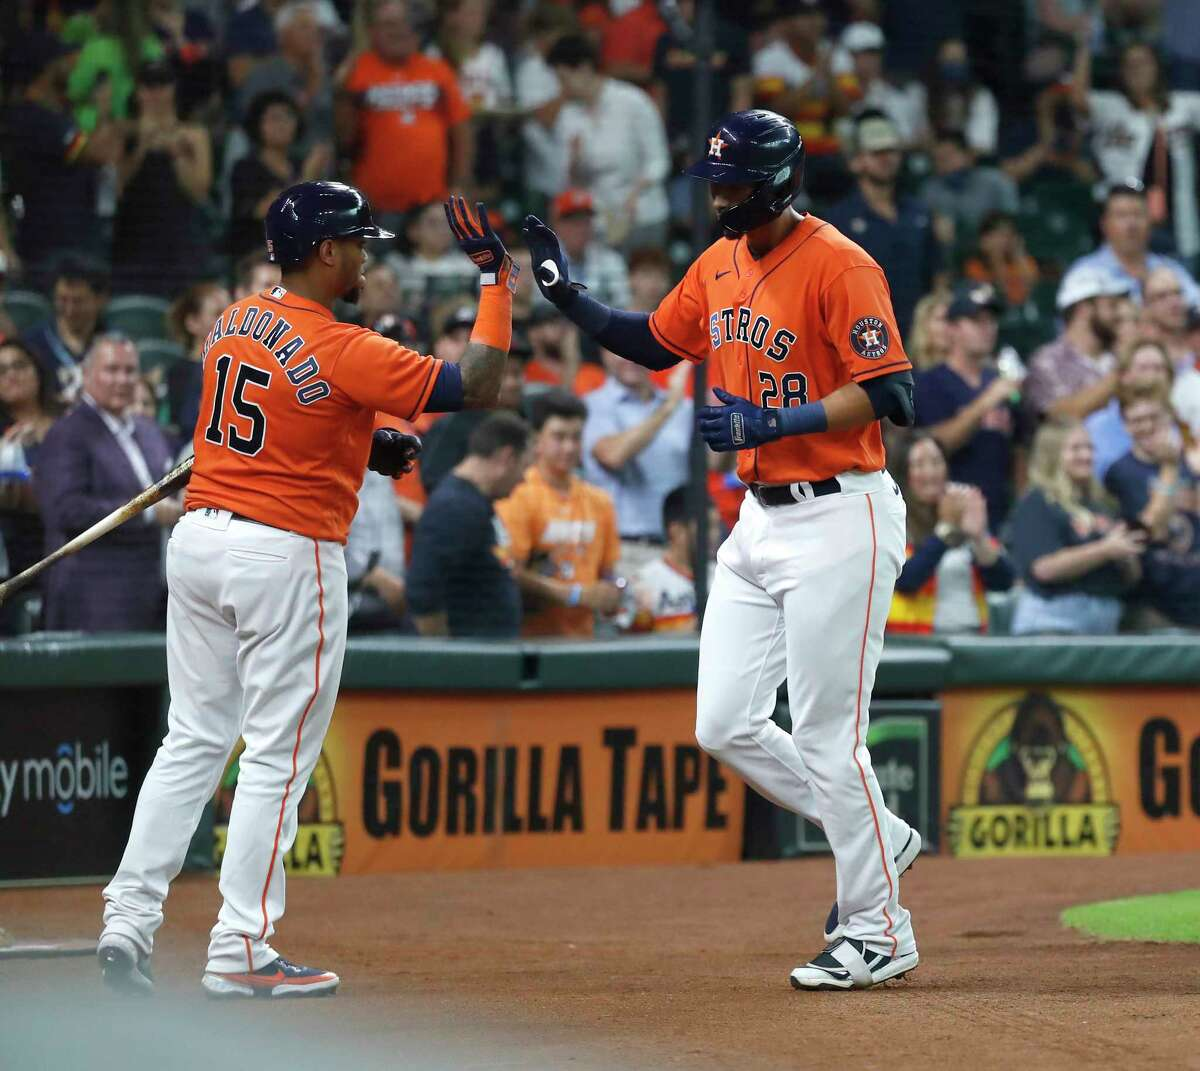 Houston AstrosTaylor Jones (28) celebrates with Martin Maldonado (15) after he hit a two-run home run off of Minnesota Twins starting pitcher Bailey Ober (82) during the second inning of an MLB baseball game at Minute Maid Park, Friday, August 6, 2021, in Houston.